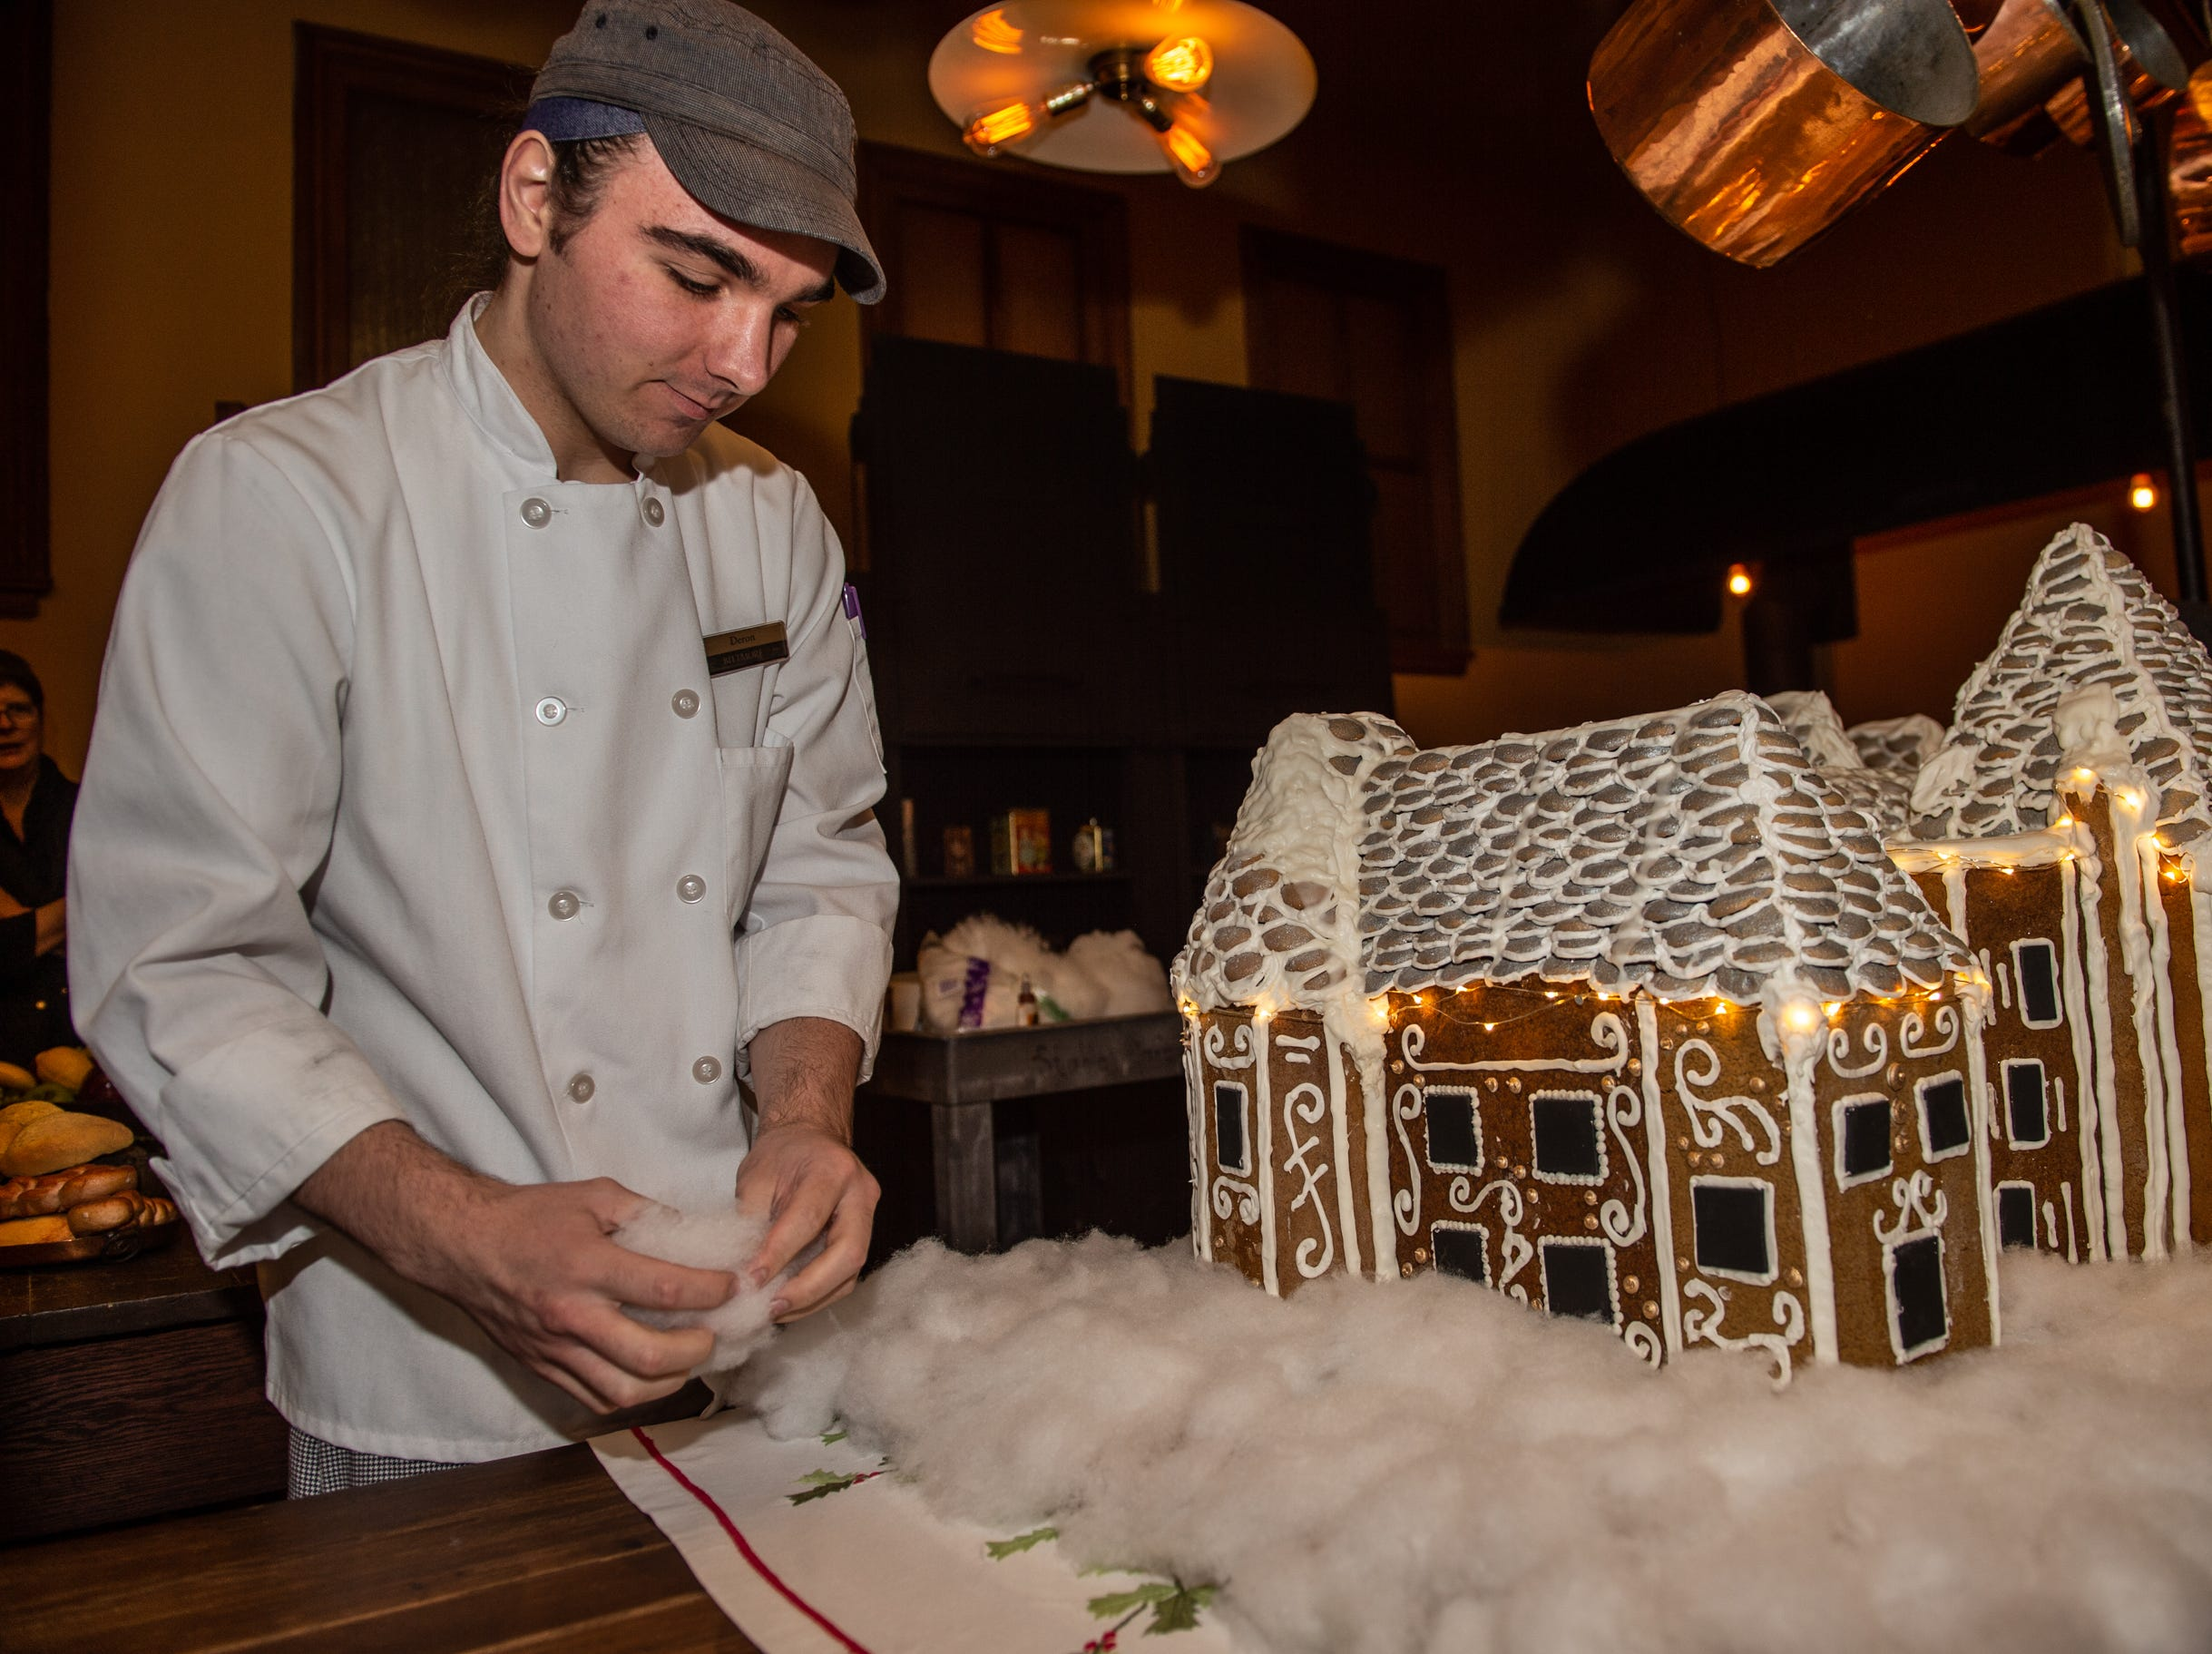 Biltmore pastry cook Deron Noel helps put the finishing touches on the gingerbread house in the Biltmore House kitchen on the morning of Nov. 2, 2018.